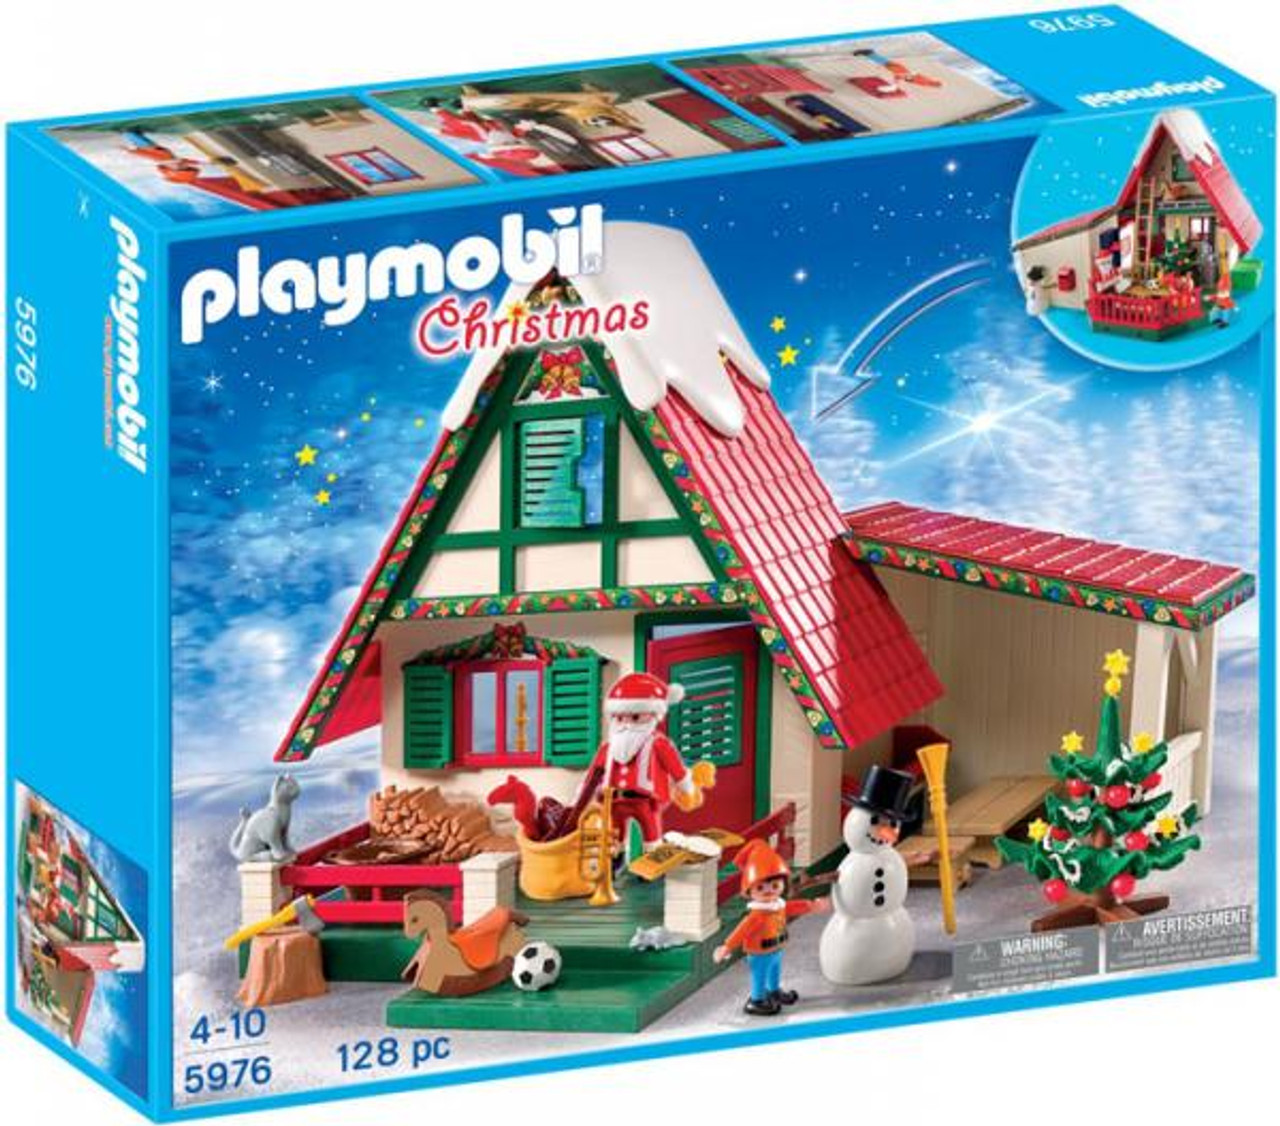 Playmobil Christmas Santa's Home Set #5976